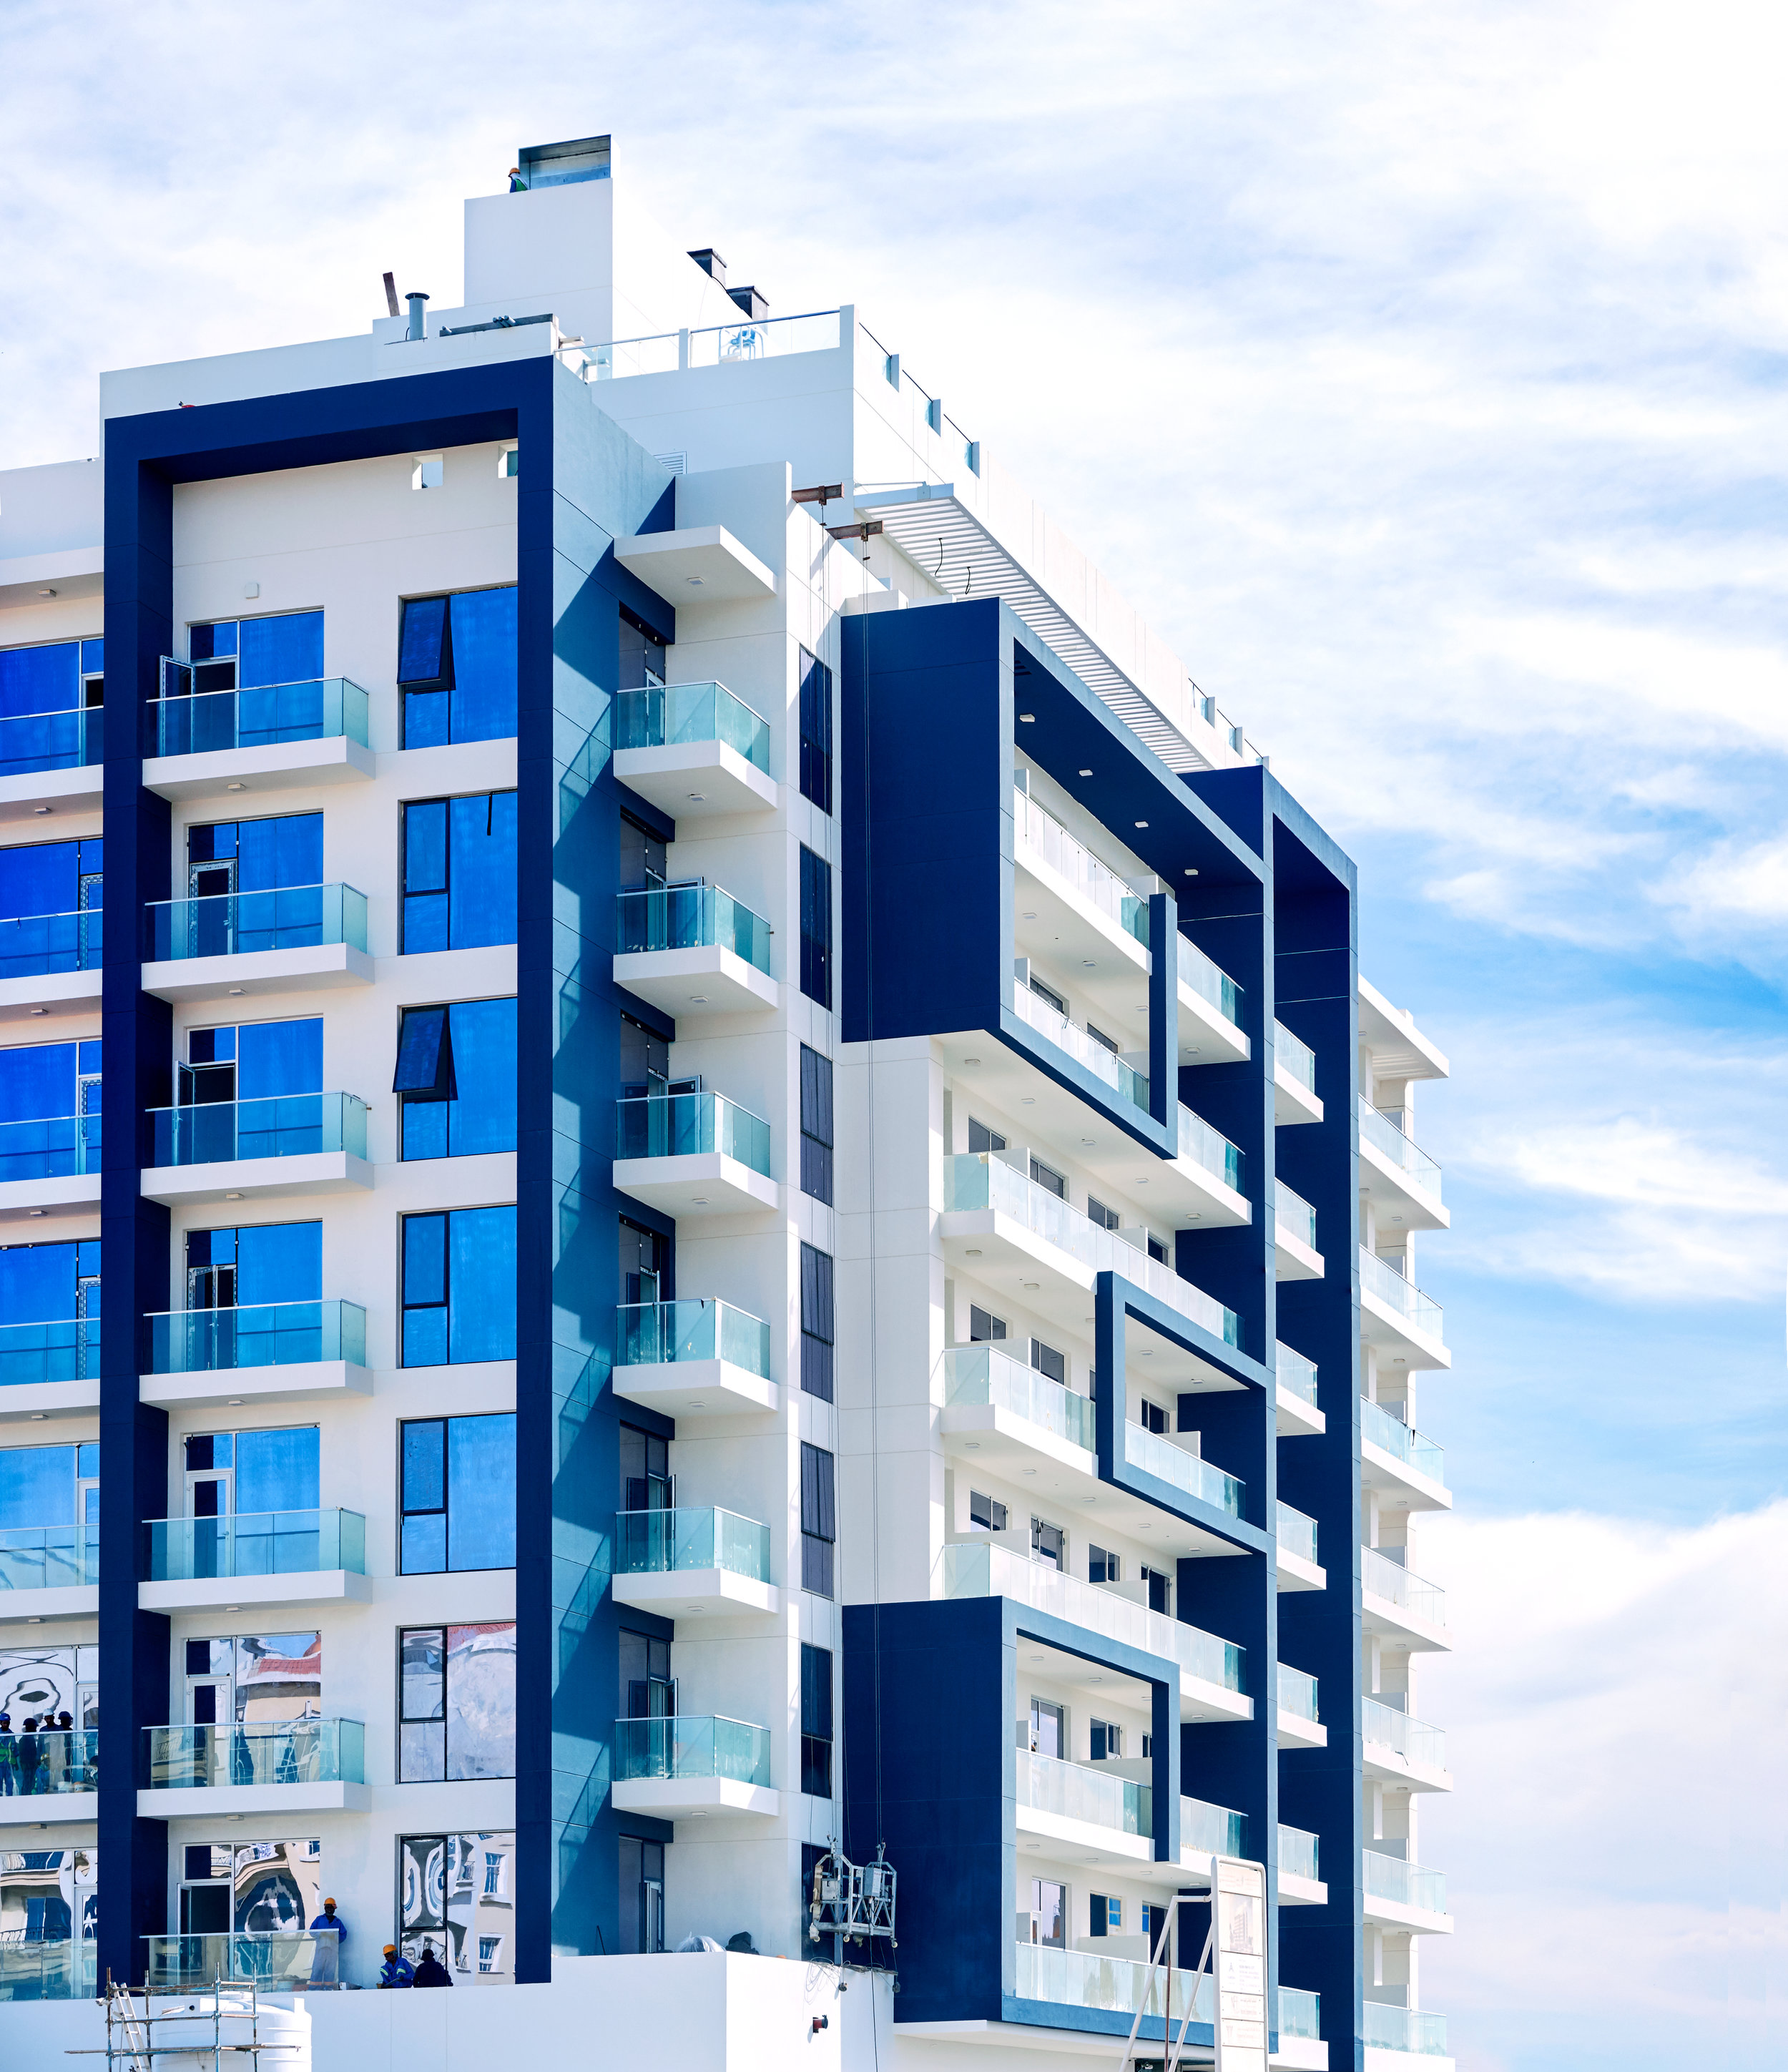 LYRA - Lyra is a 112 rental-only apartment building that comprises of 65 one bed, 36 studios, 11 two beds and 4 retail units along with a double basement, ground floor, 9 levels of apartments and a roof terrace with a swimming pool and gym located in Al Warsan 4, Dubai.